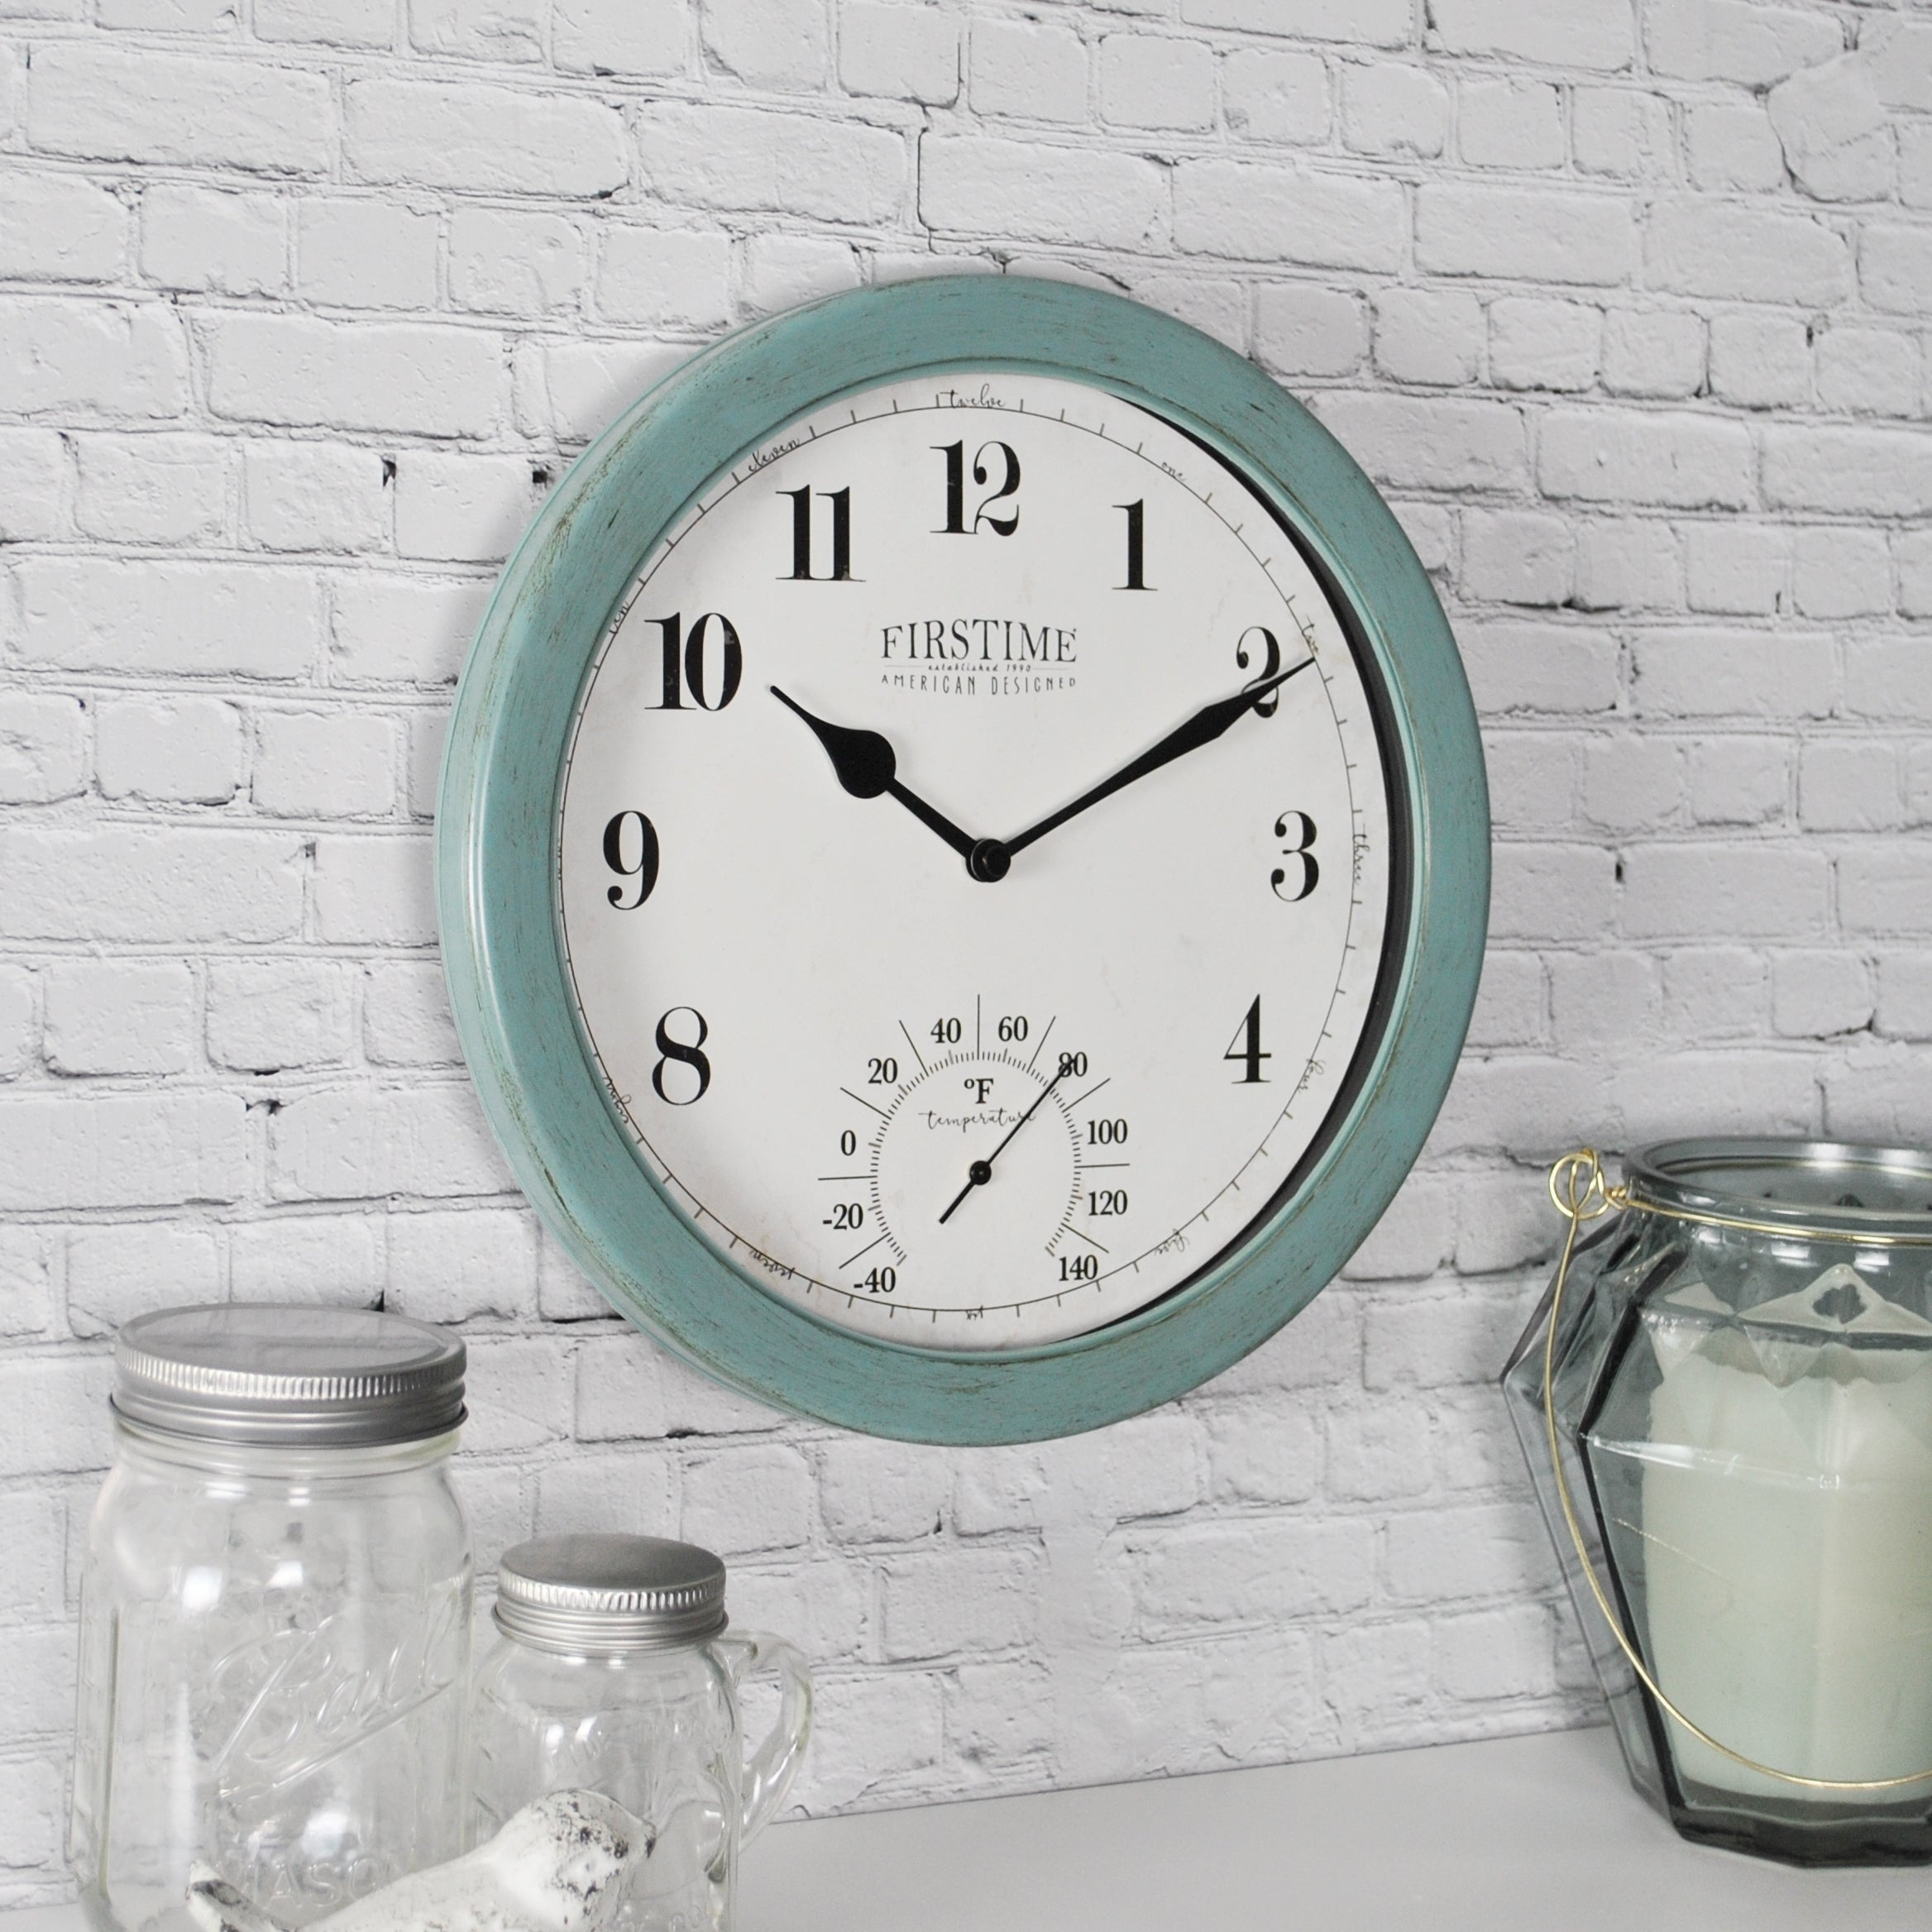 Shop FirsTime U0026 Co® Chatham Outdoor Wall Clock   Free Shipping On Orders  Over $45   Overstock   22735837